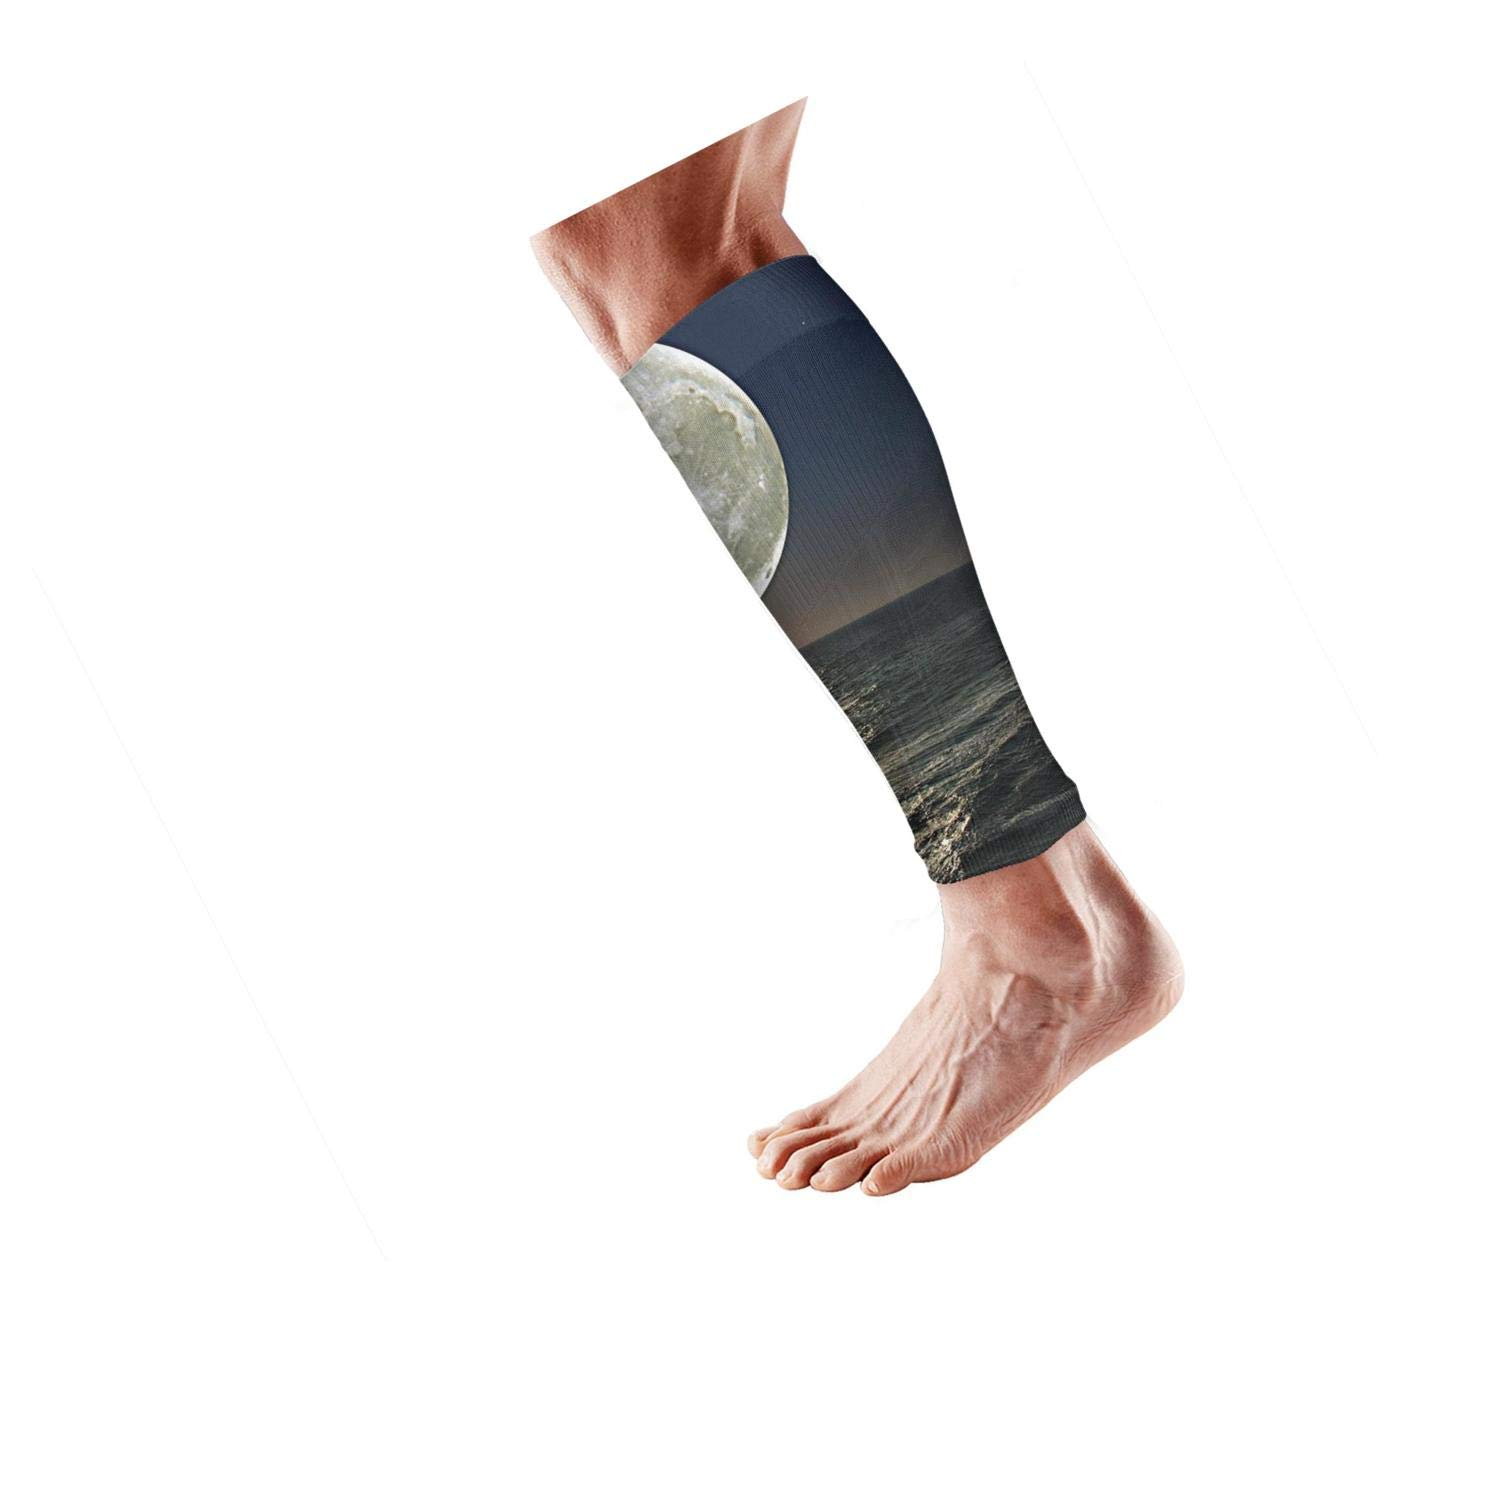 Smilelolly Ship Sailing in the Midnight Fullmoon Calf Compression Sleeves Helps Shin Splint Leg Sleeves for Men Women